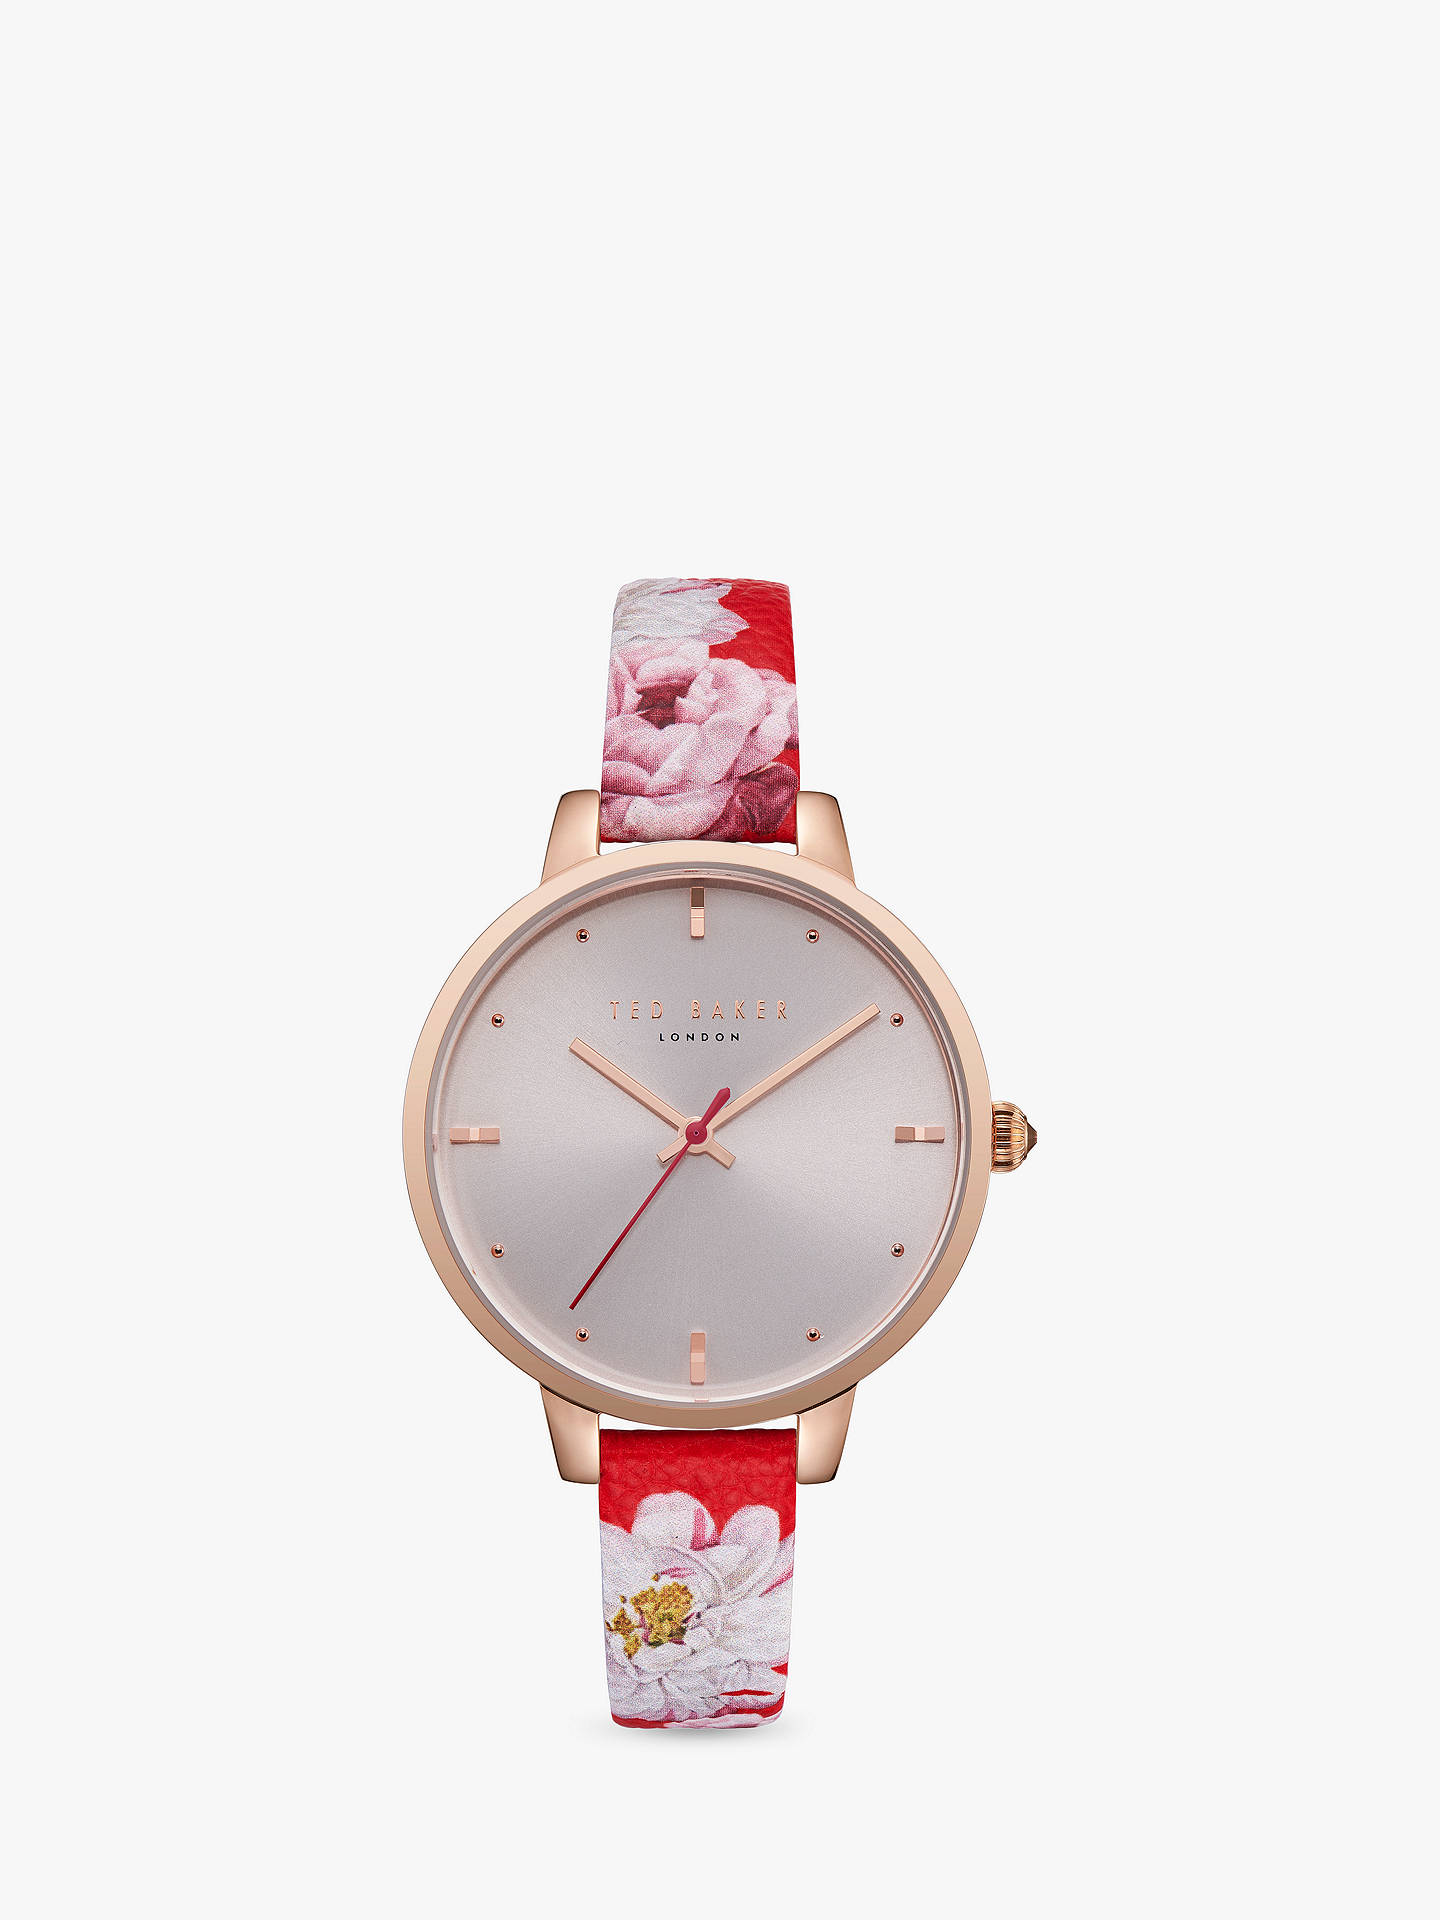 BuyTed Baker TE50005011 Women's Kate Floral Leather Strap Watch, Multi/Silver Online at johnlewis.com